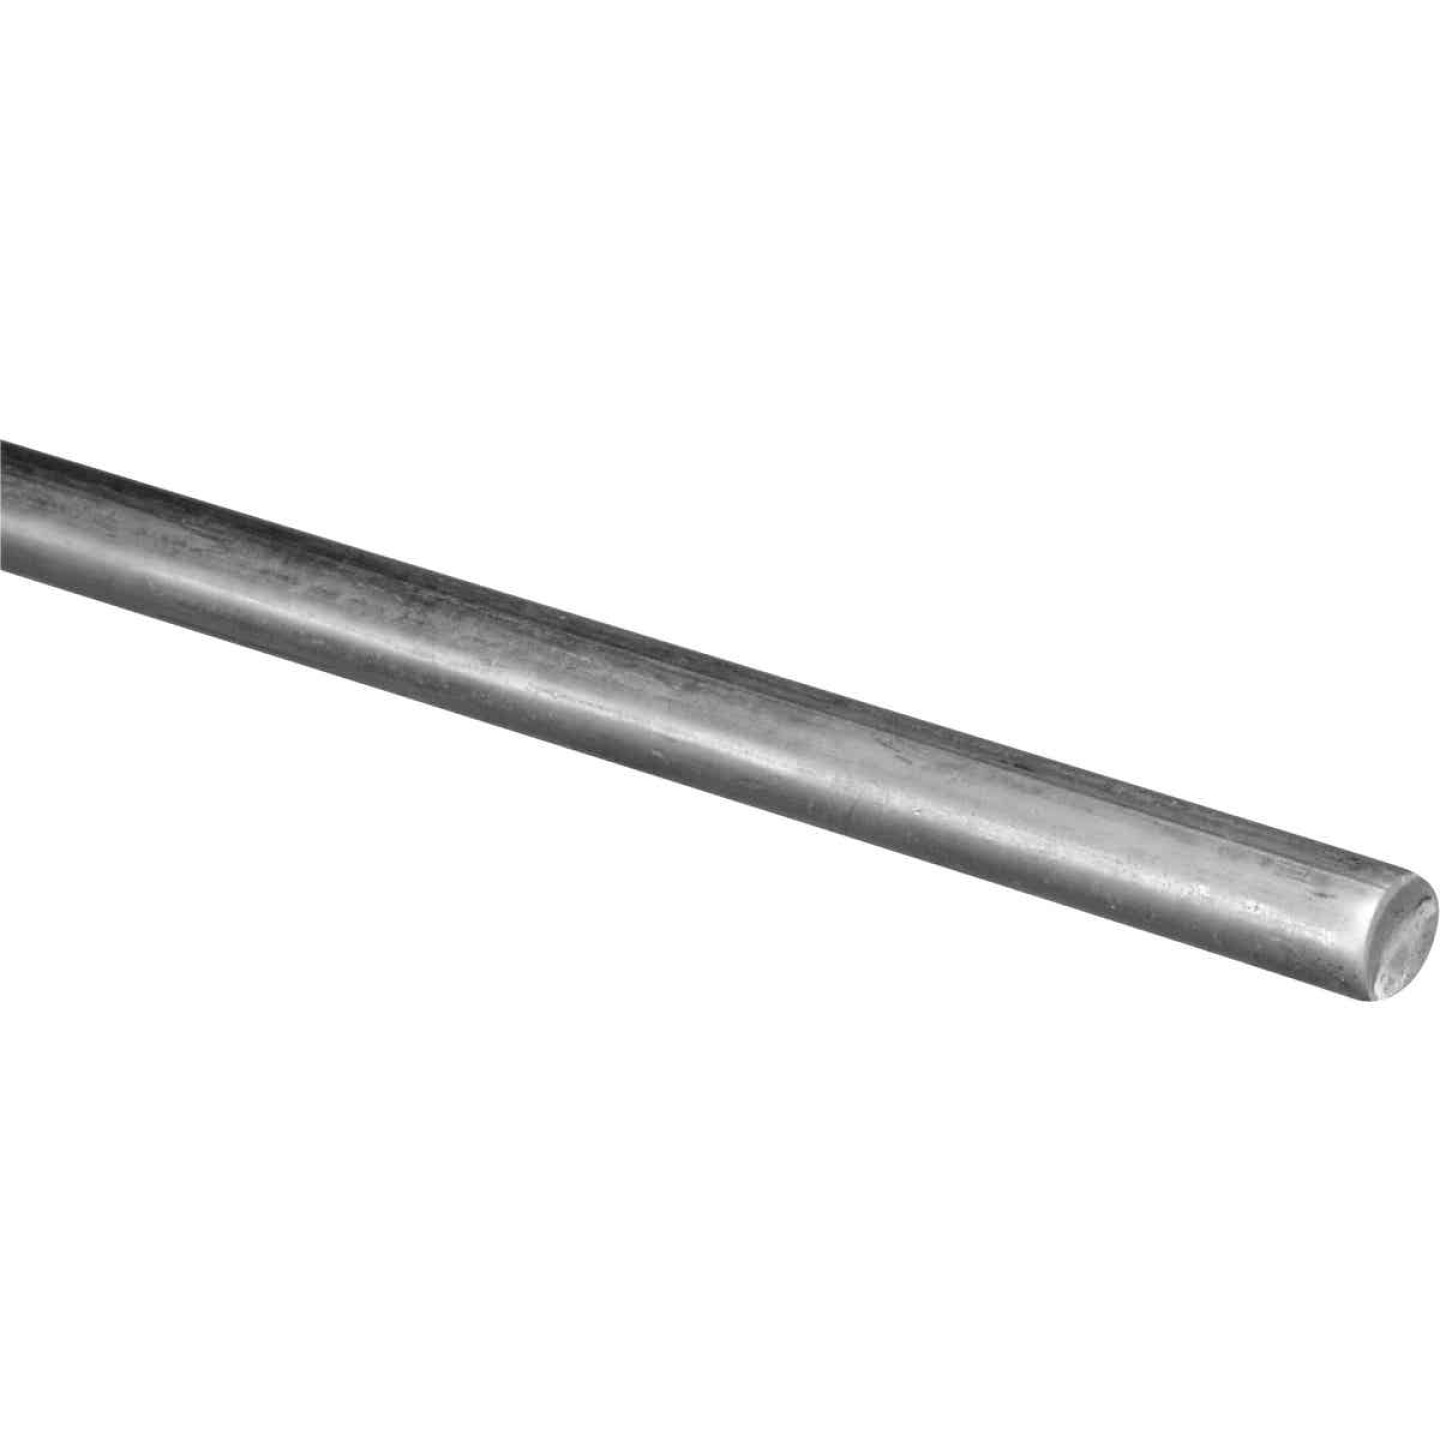 Hillman Steelworks Steel 3/16 In. X 3 Ft. Solid Rod Image 1